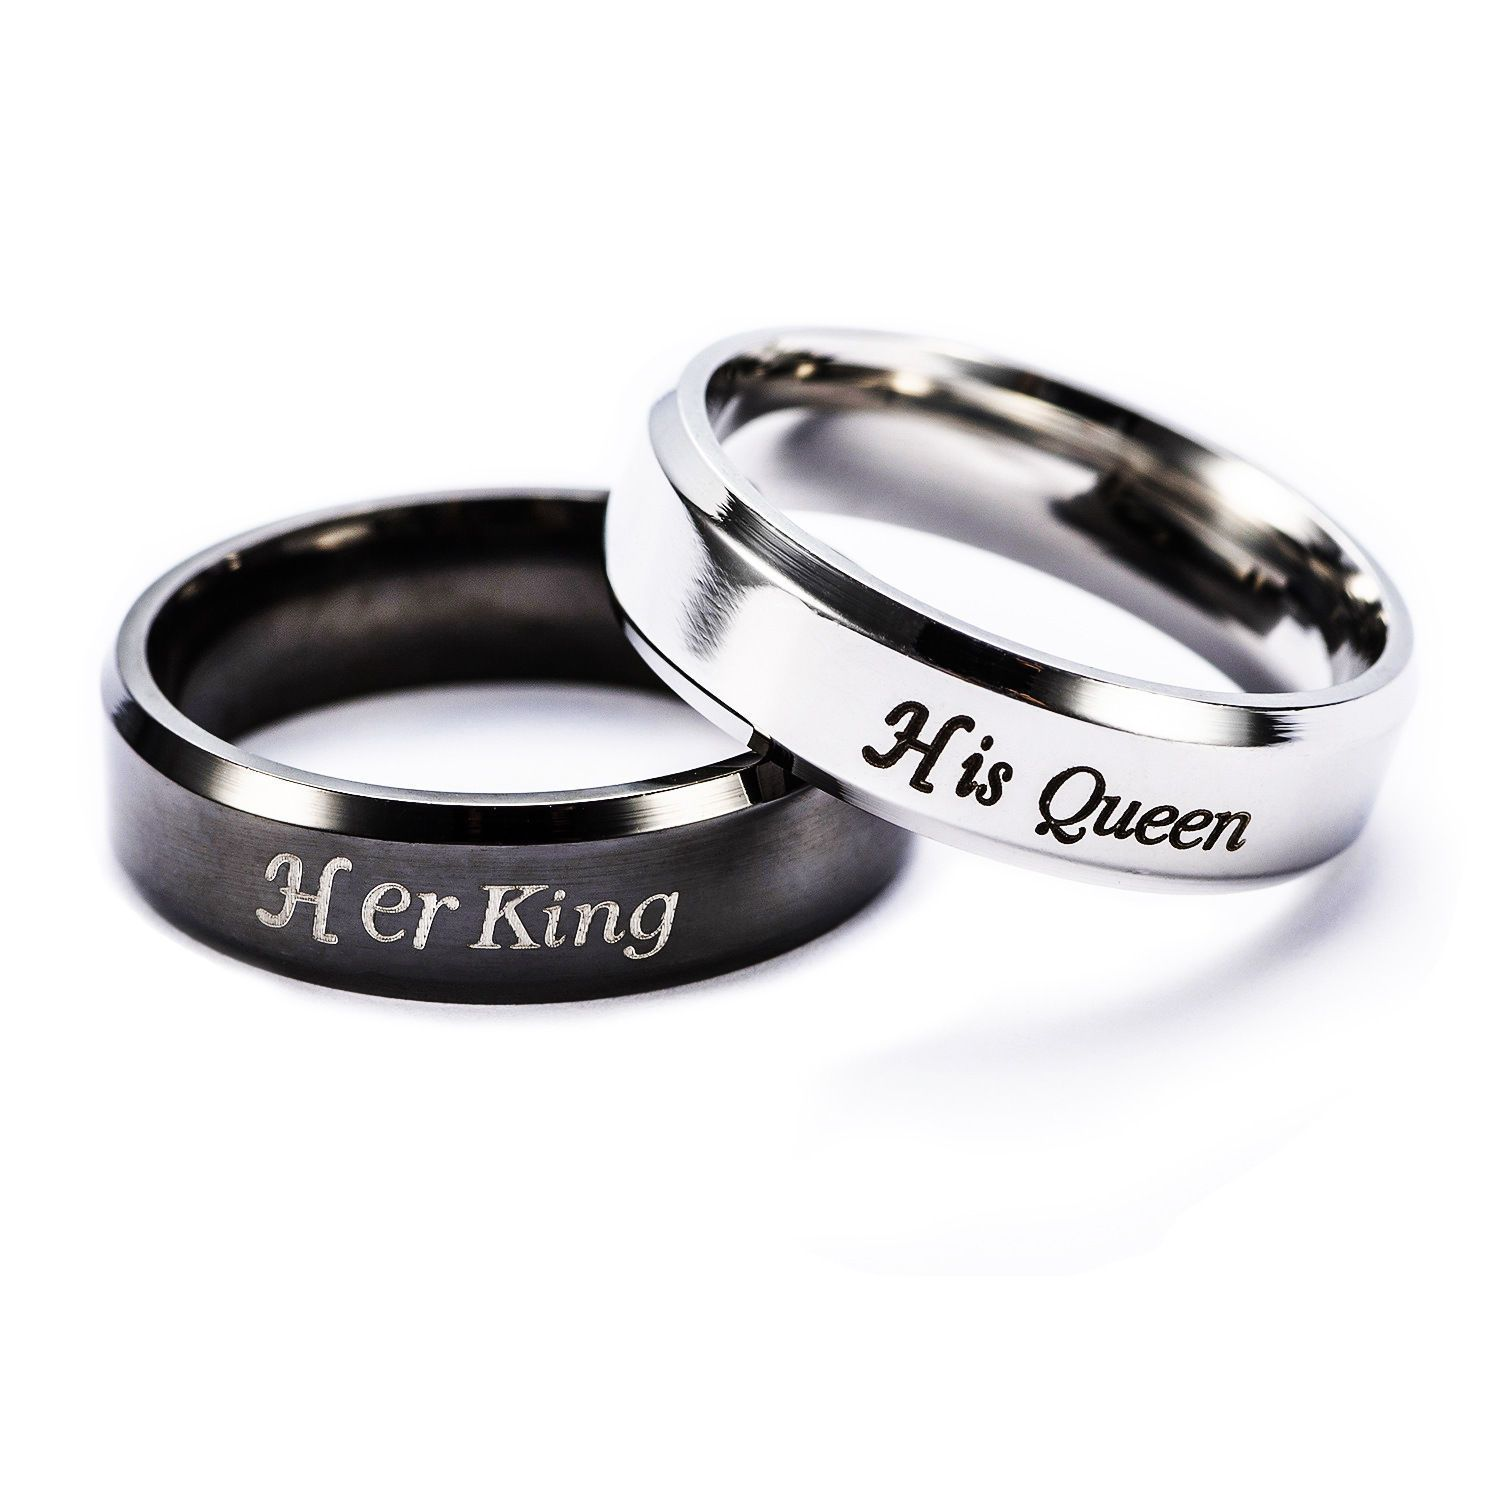 Jewelry & Accessories New Fashion Romance Titanium Steel Couple Ring Beauty Beast Anniversary Engagement Valentines Day Accessories Gift